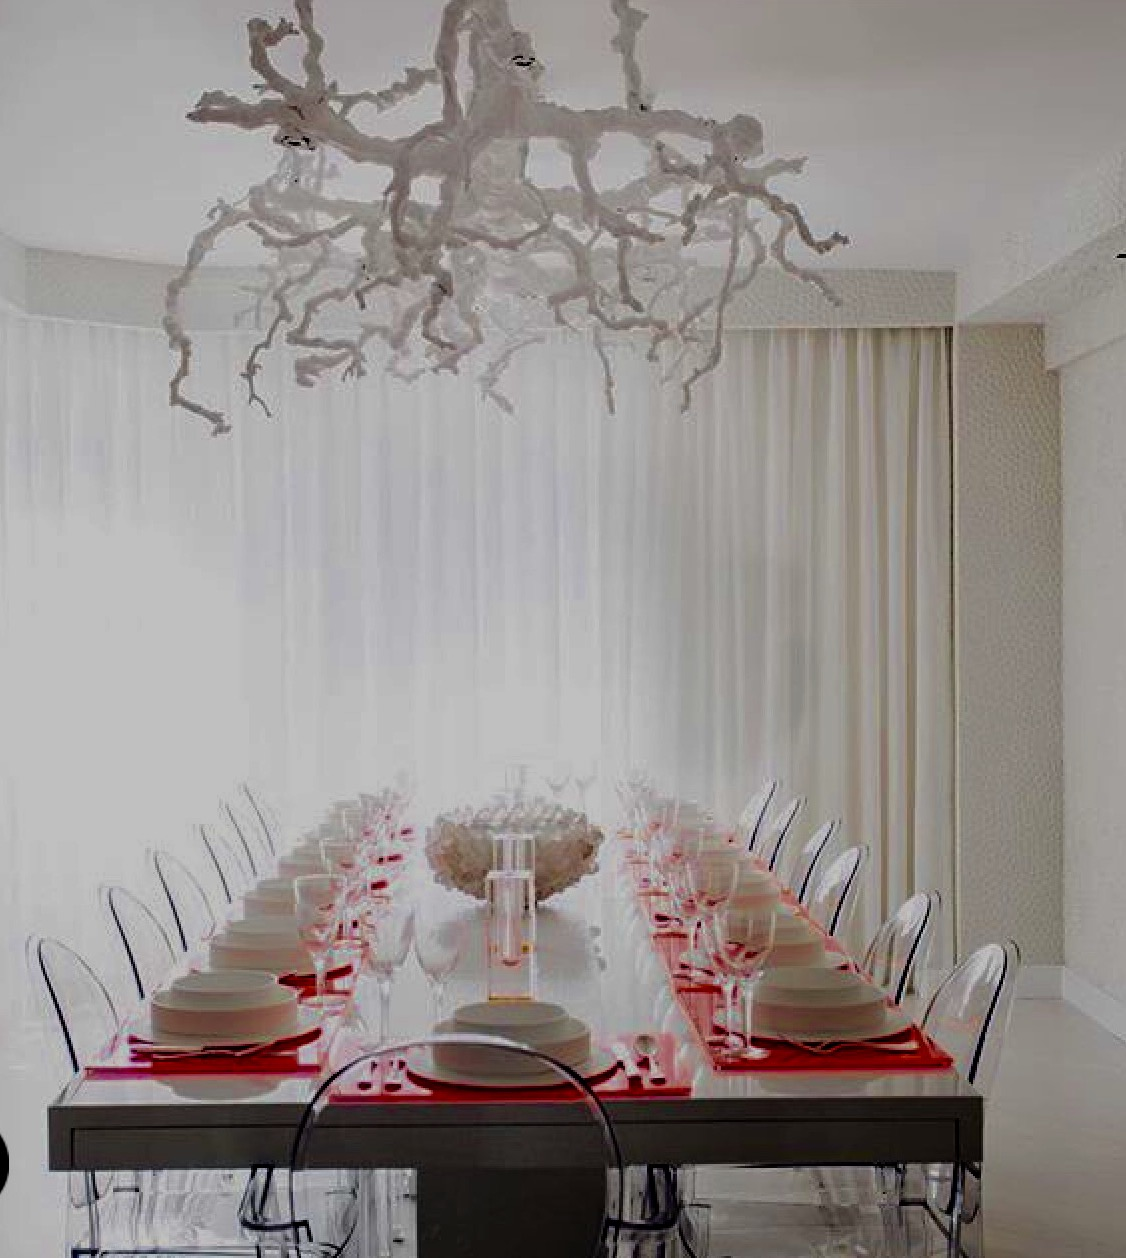 Guy clark interiors modern traditional with a twist a manhattan modern dining room with an edge a custom grape vine chandelier by the aloadofball Image collections